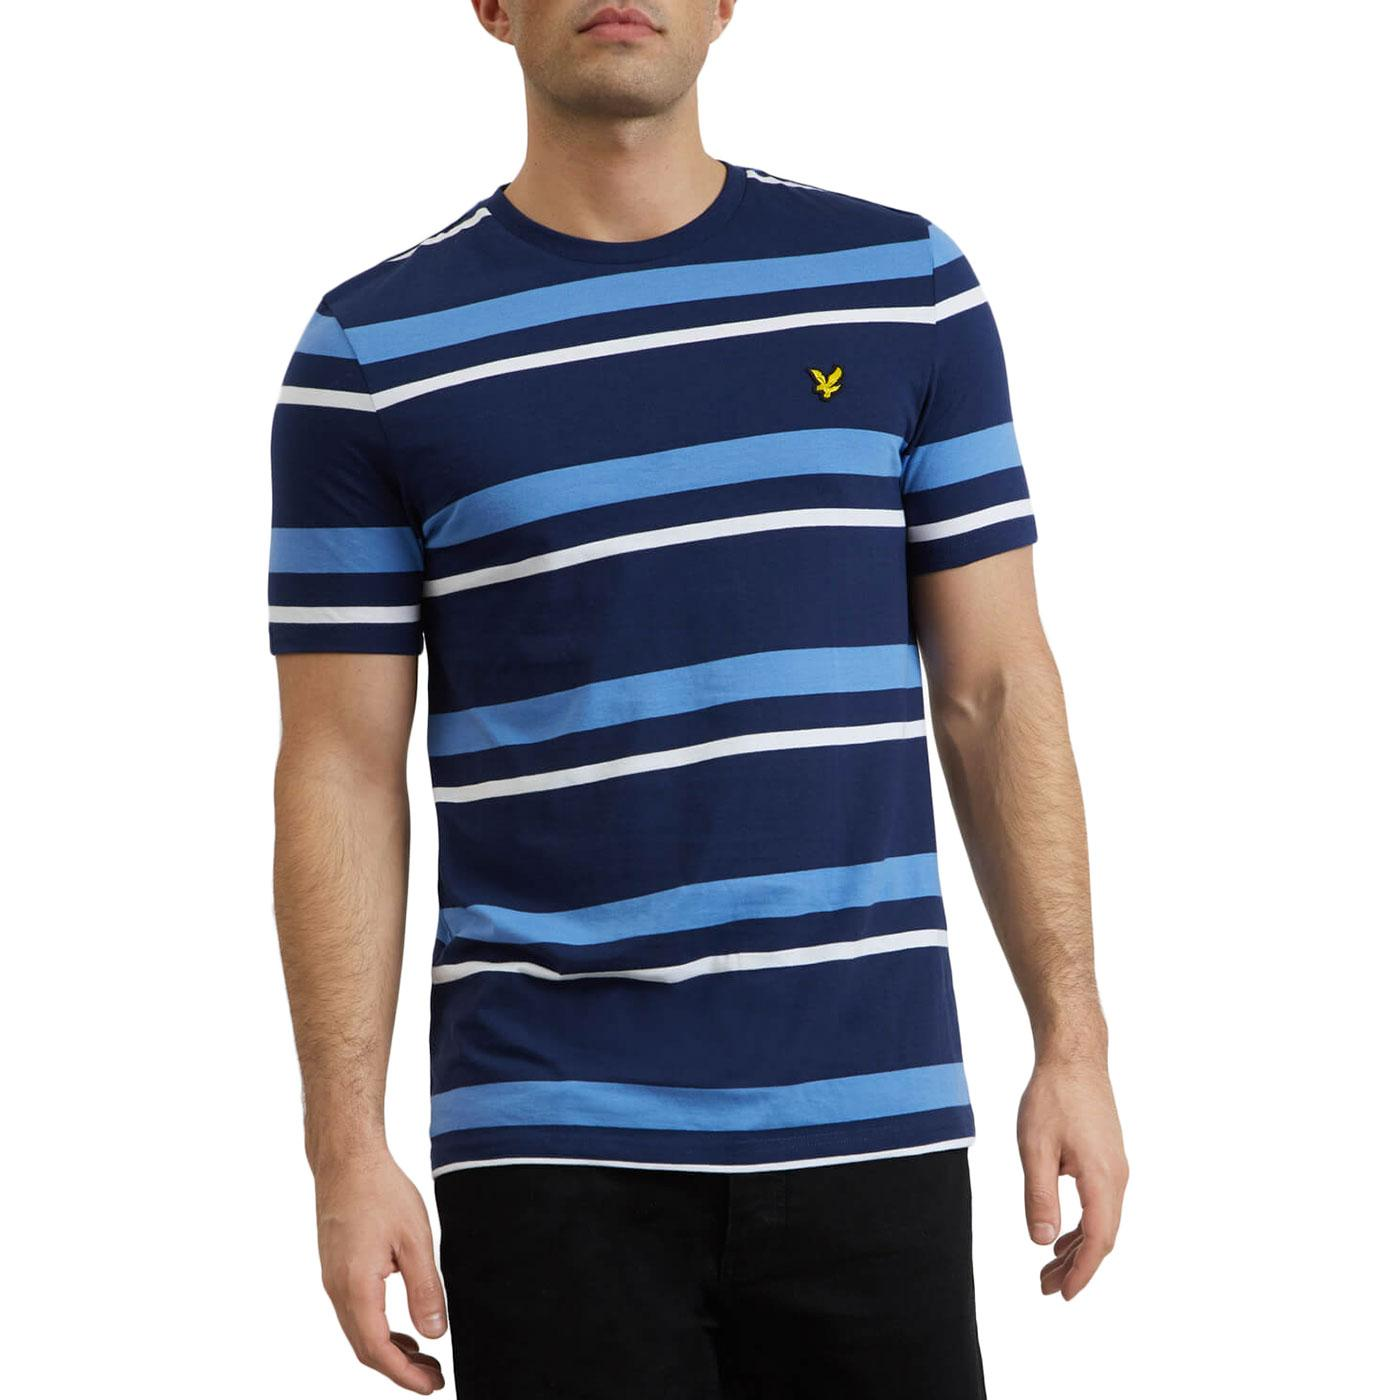 LYLE & SCOTT Retro Mod Multi Stripe T-shirt (Navy)